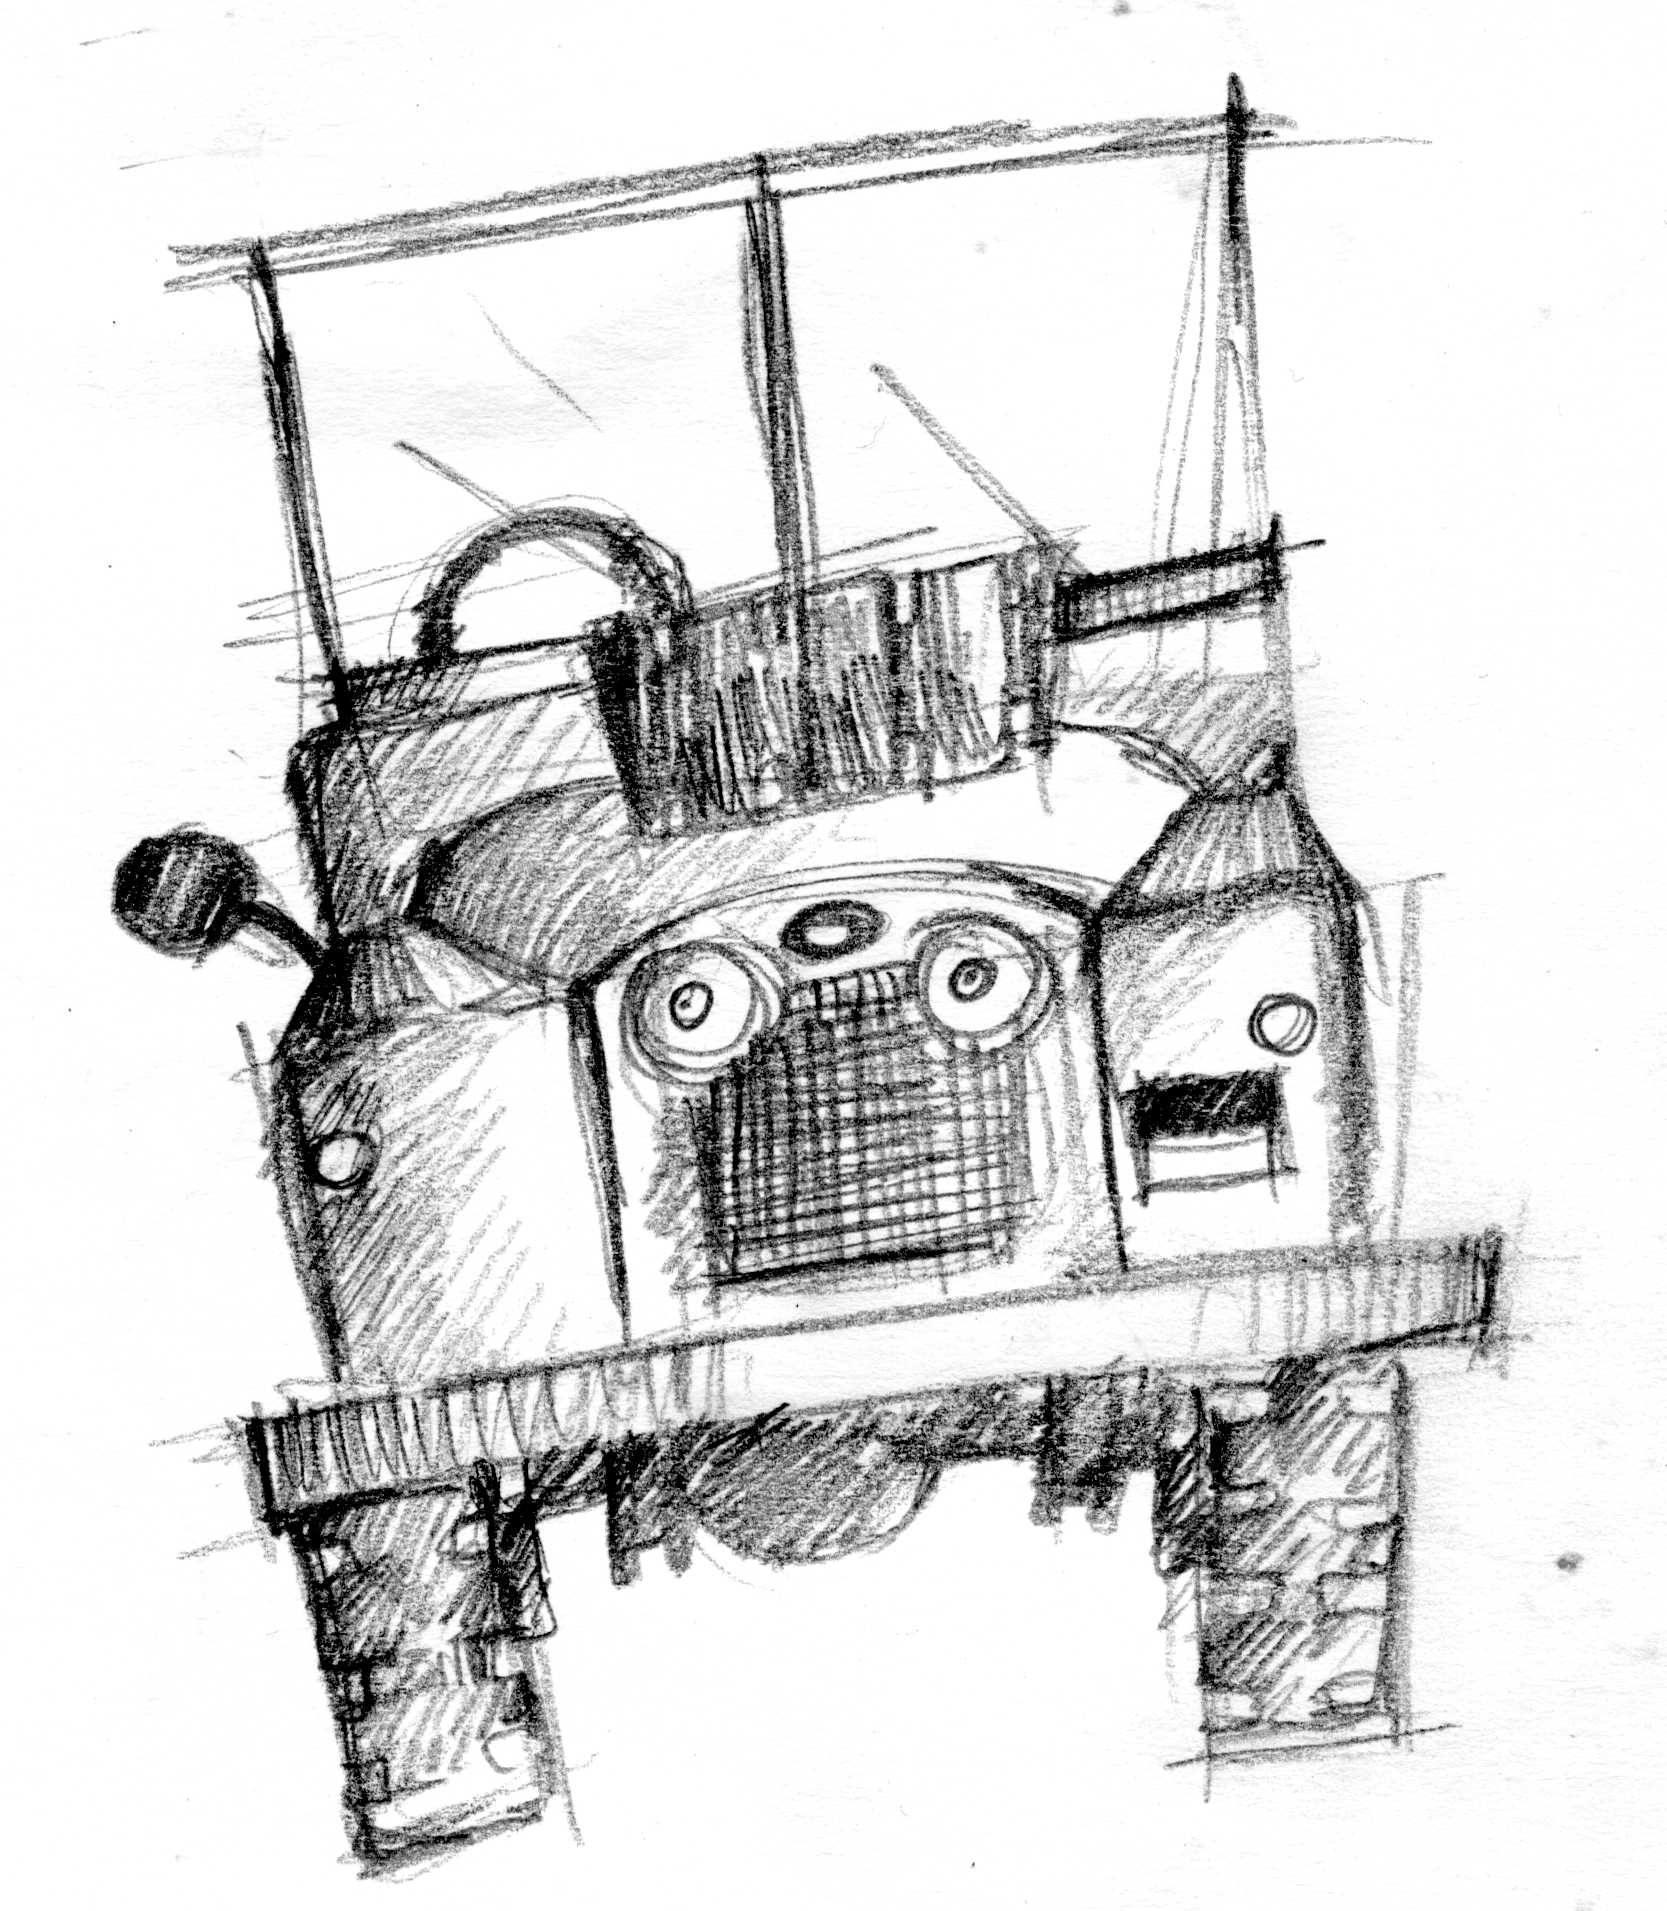 Land Rover Series I Sketch